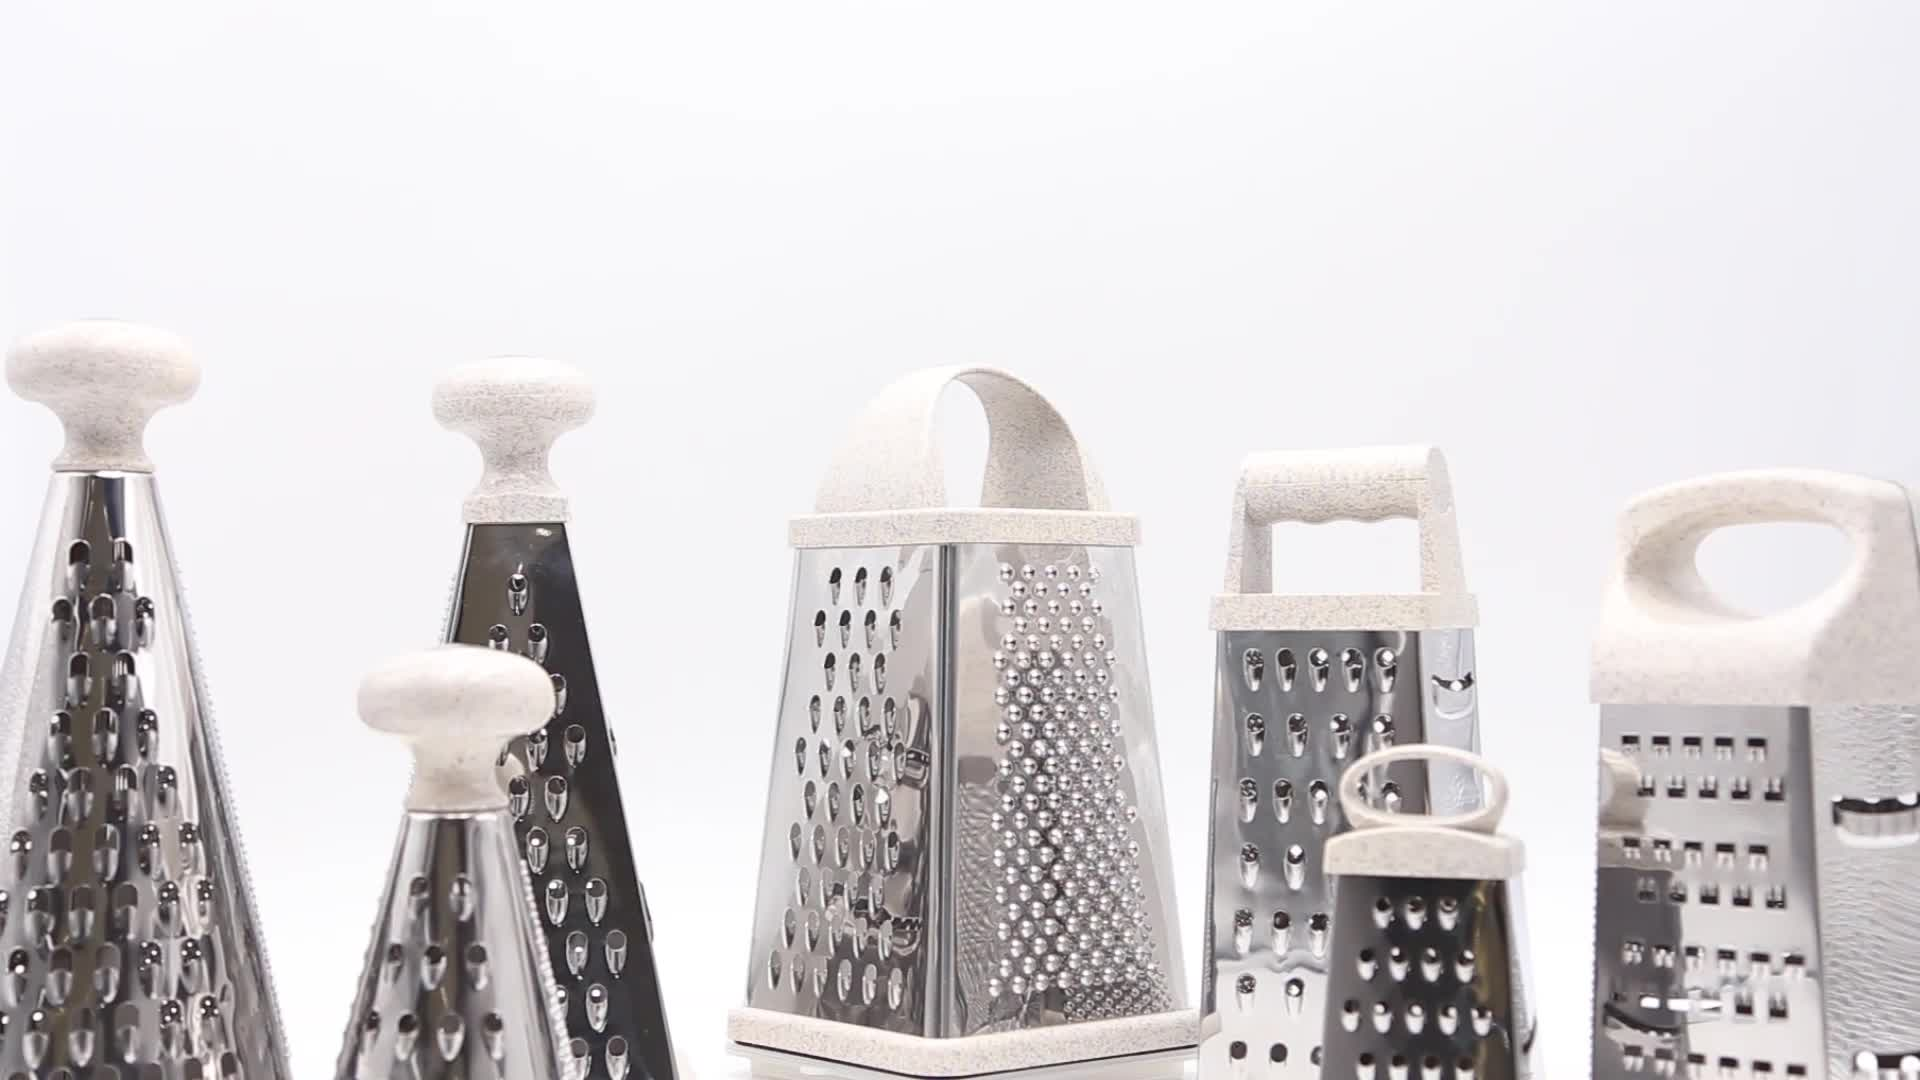 2019 New 6 Sides Multifunctional Stainless Steel Grater For Fruit And Vegetable